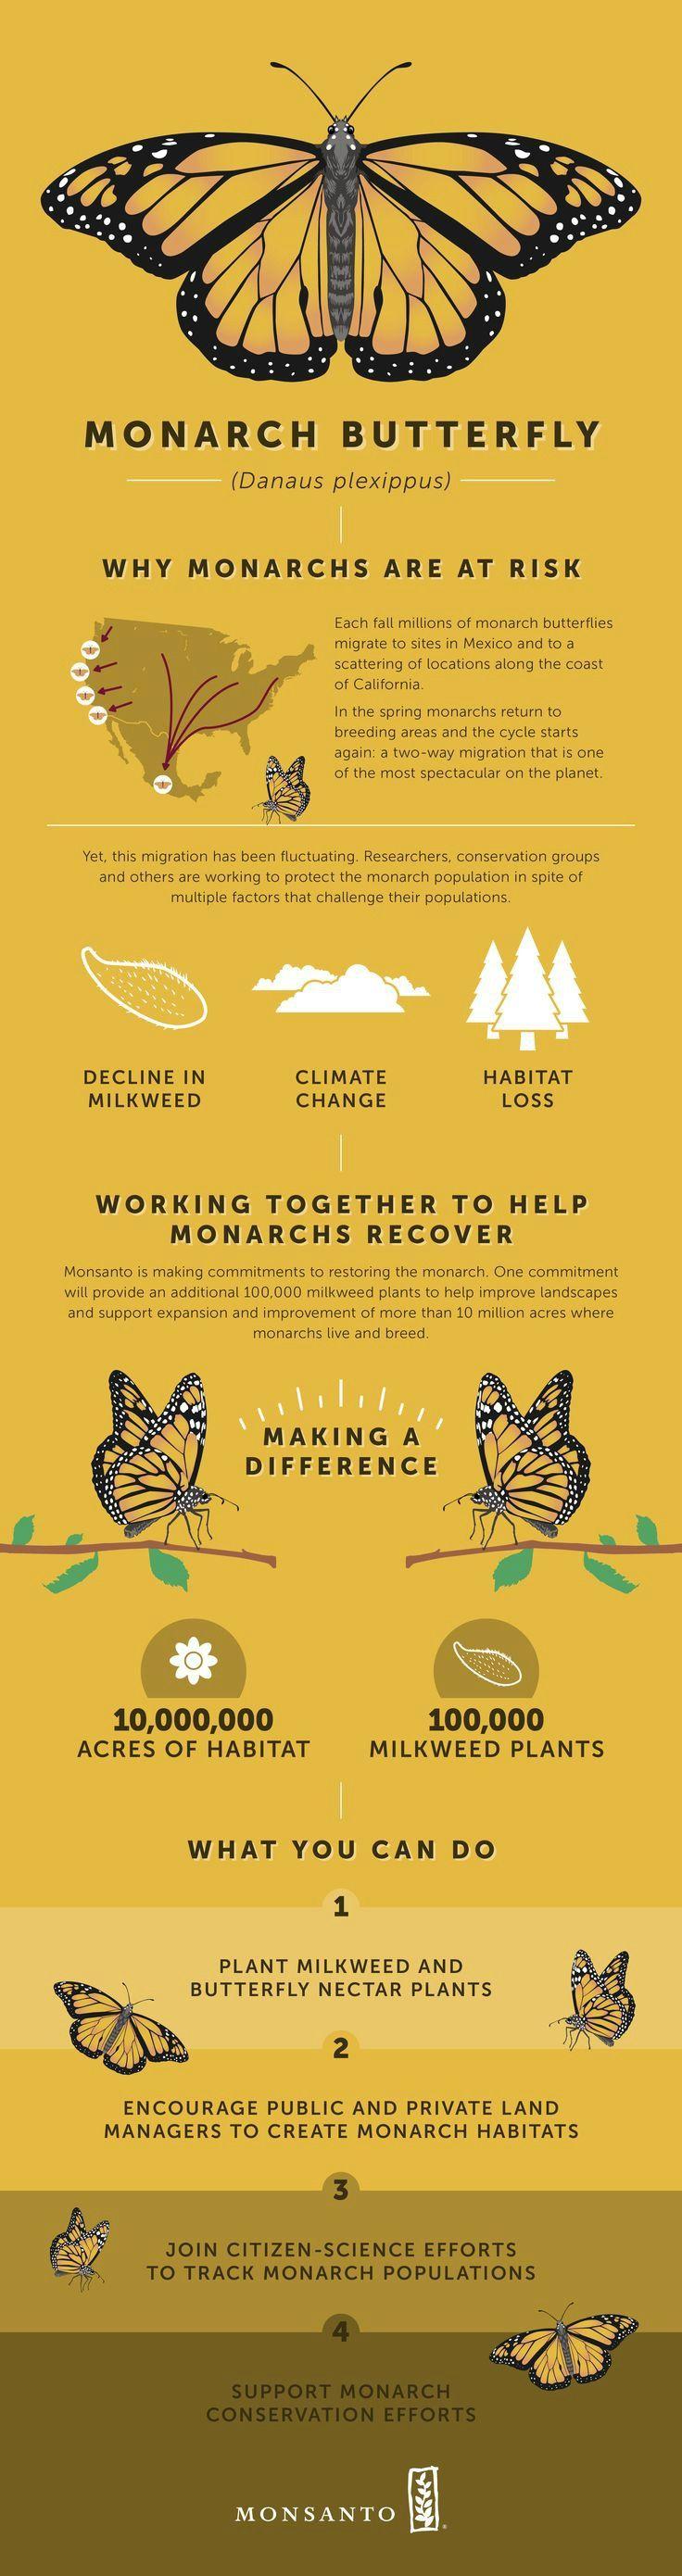 Find out why Monarch butterflies are at risk and what we at #Monsanto are doing to help them thrive. Find out more here!